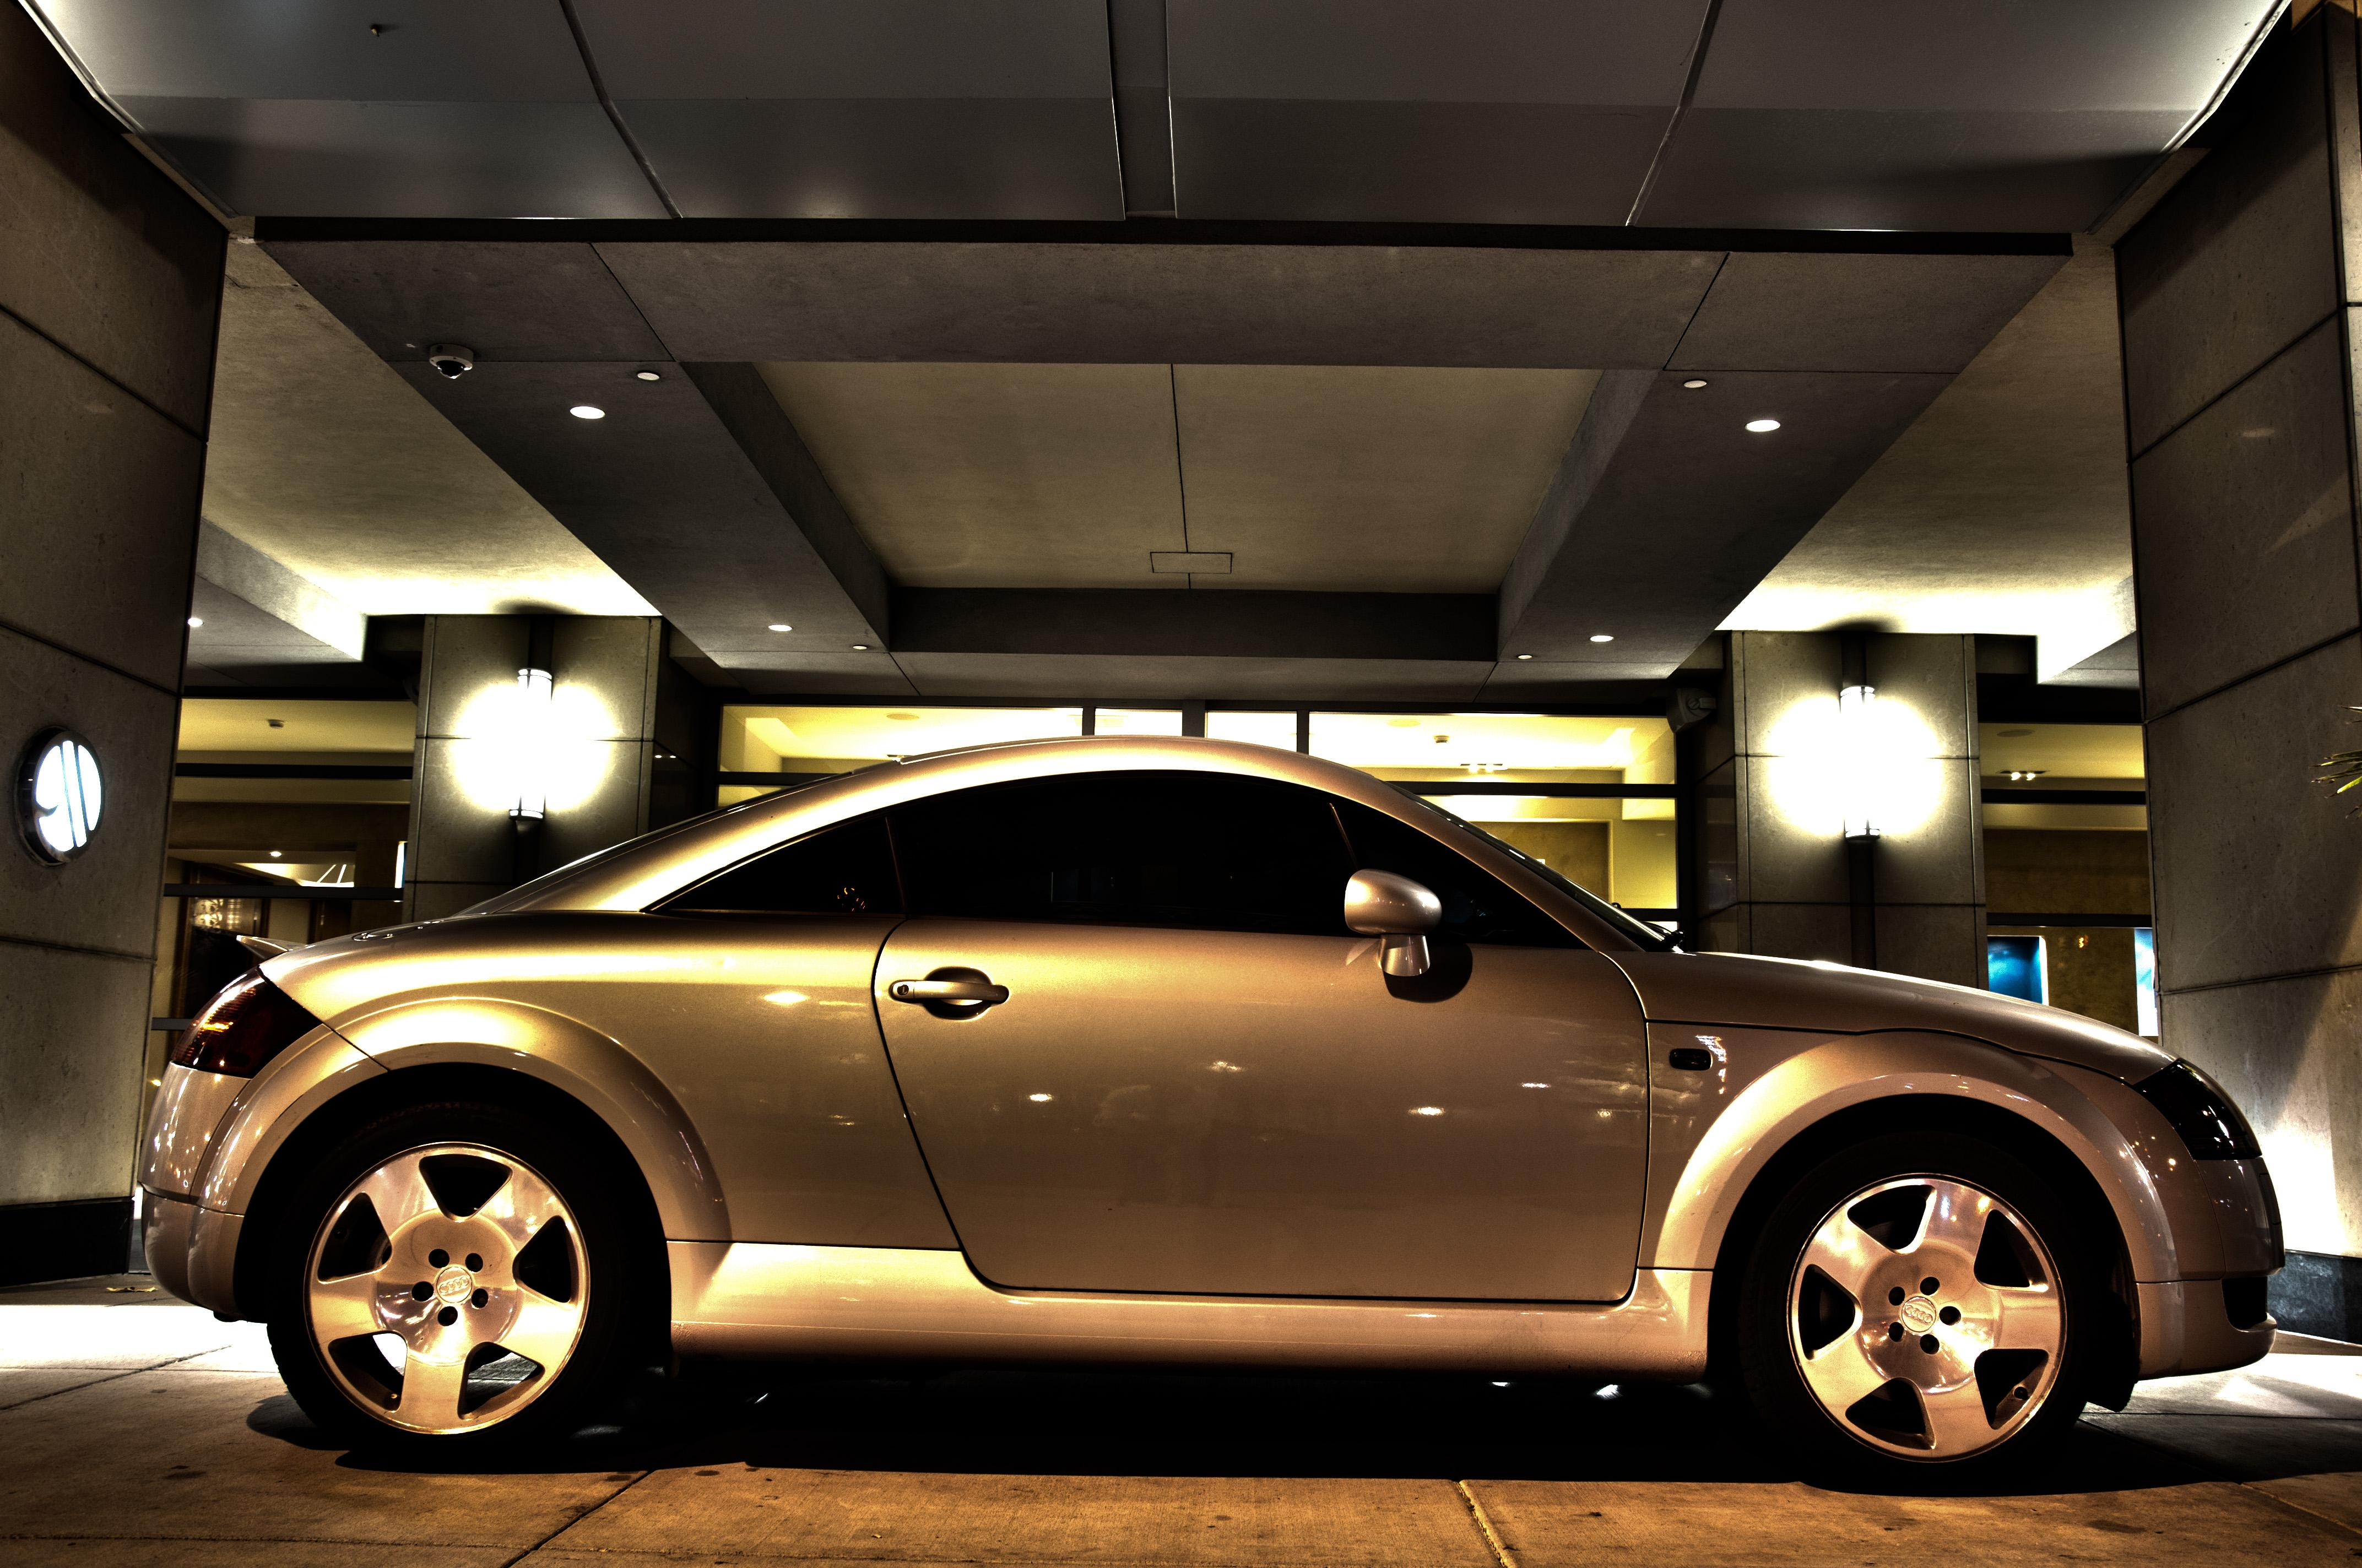 xwright 2002 audi tt225 quattro coupe 2d specs photos modification info at cardomain. Black Bedroom Furniture Sets. Home Design Ideas